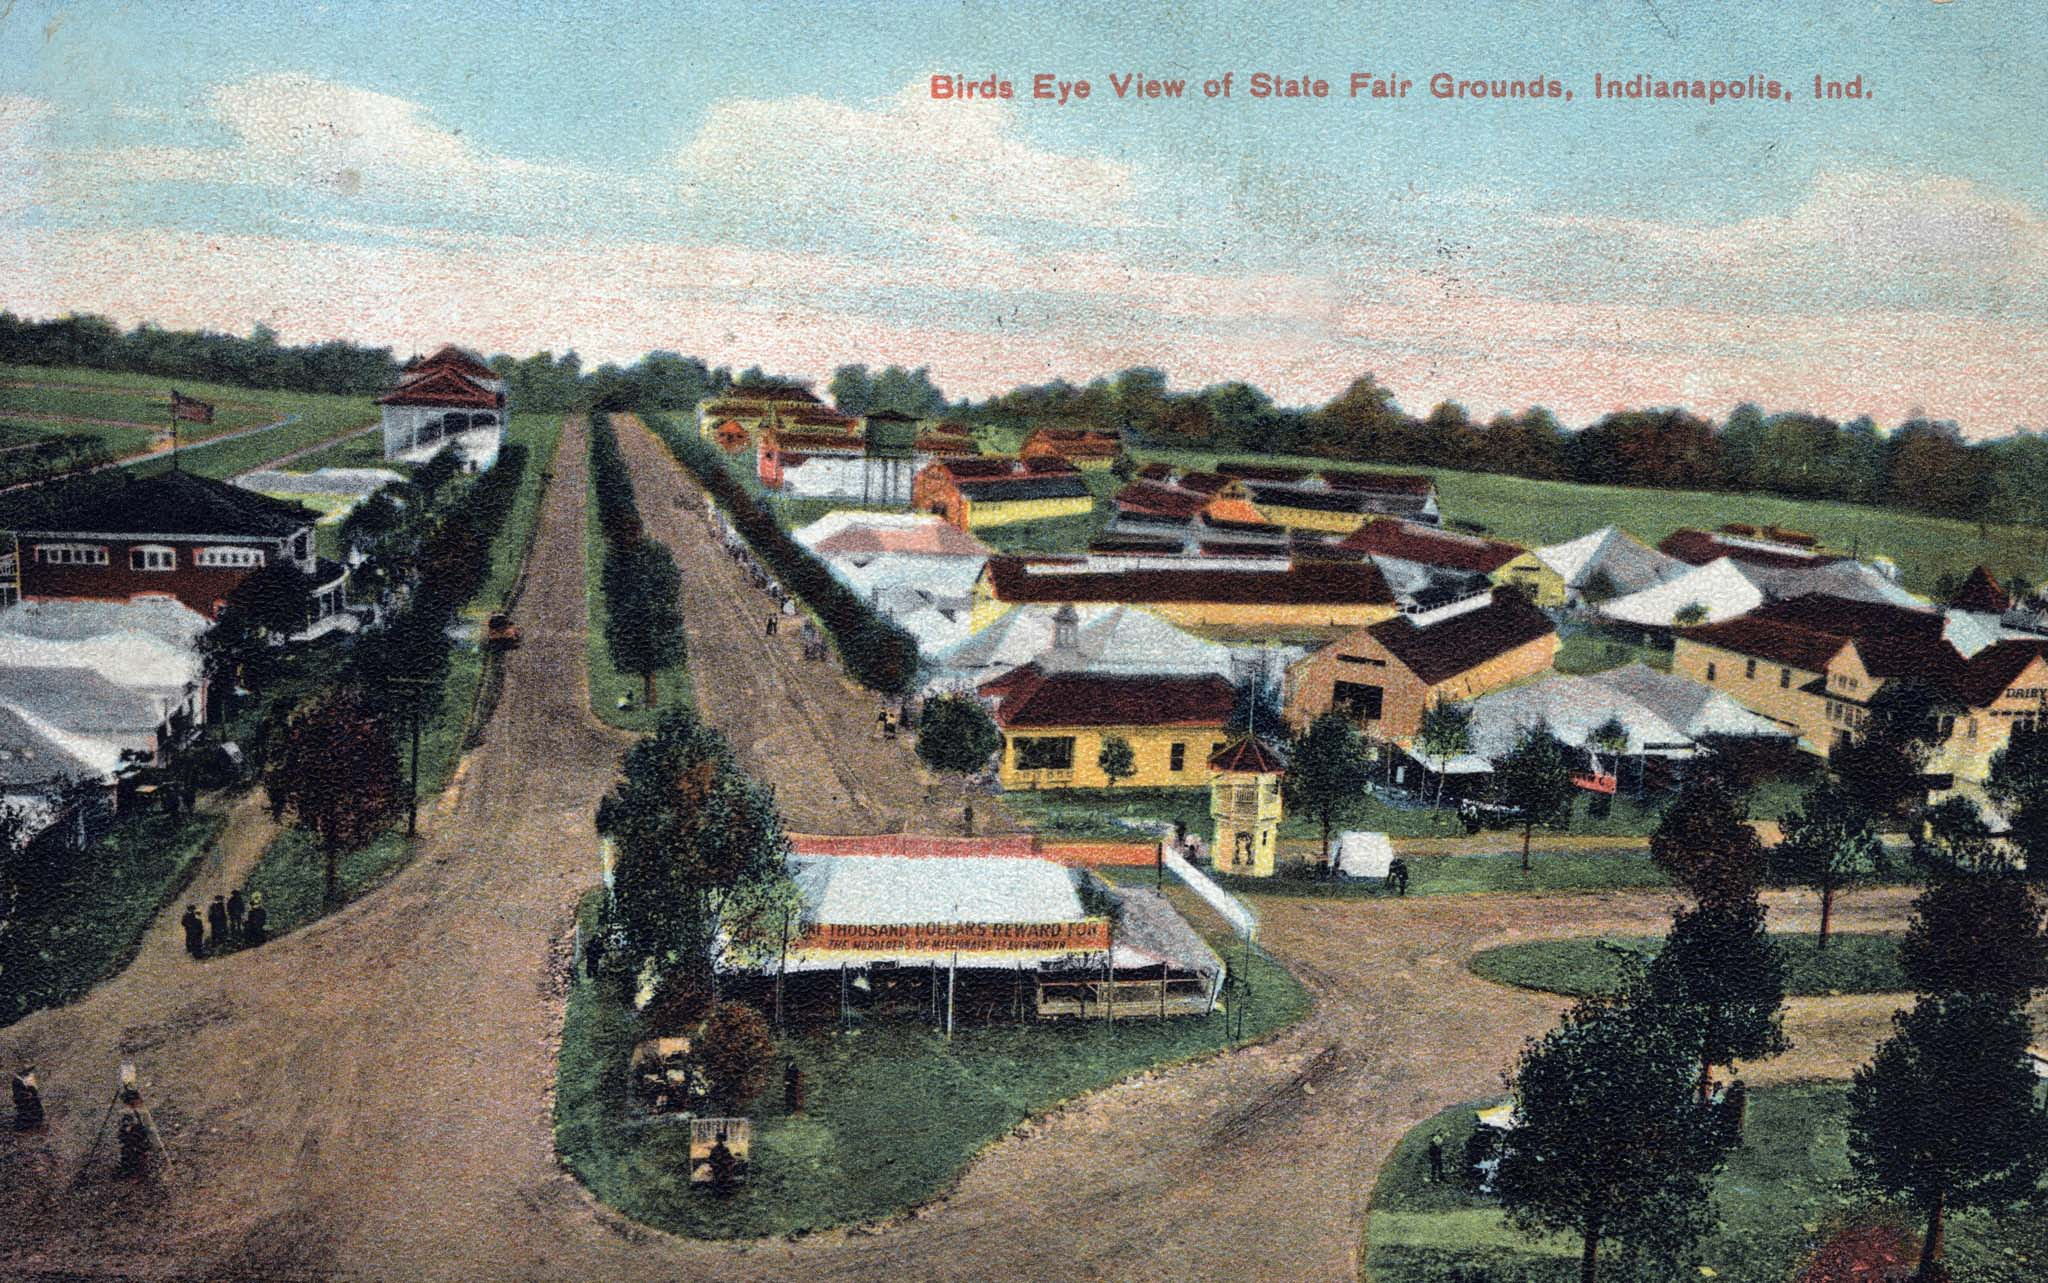 Indianapolis Then and Now: Indiana State Fair, 1202 E. 38th Street on 2014 michigan map, 2014 namm show map, indiana state fairgrounds map,